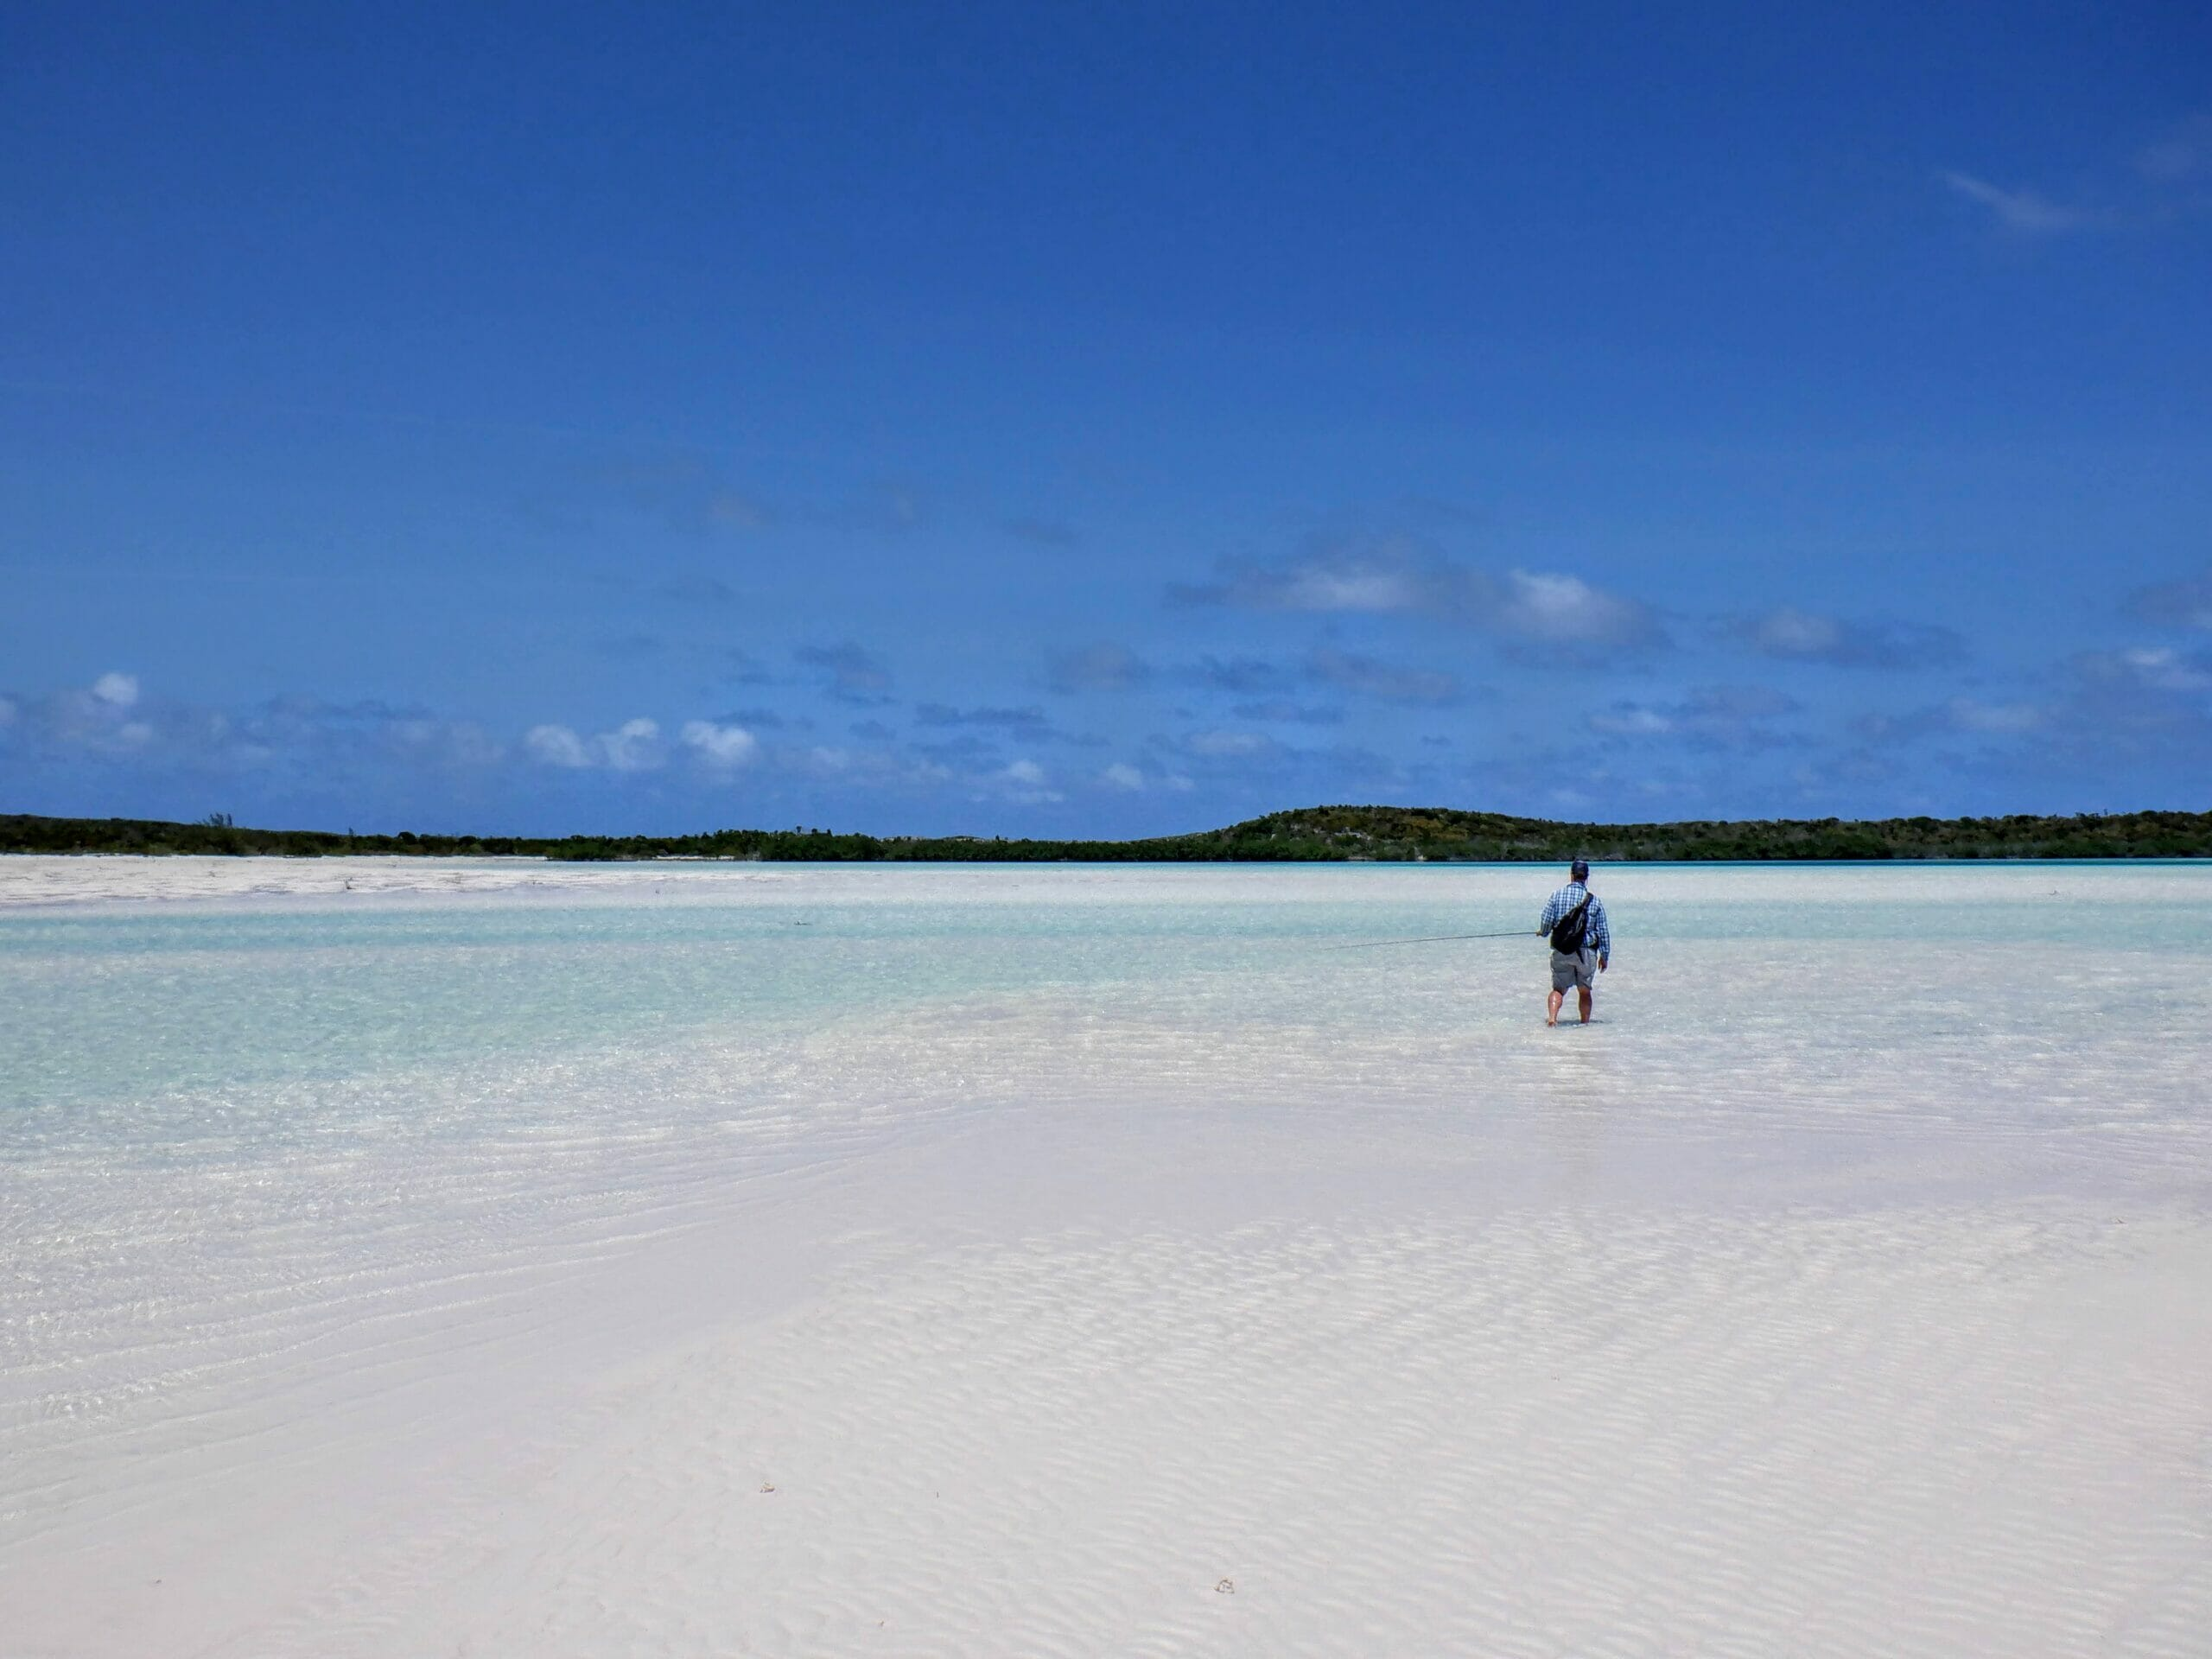 An angler walking across a Bahamian flat.